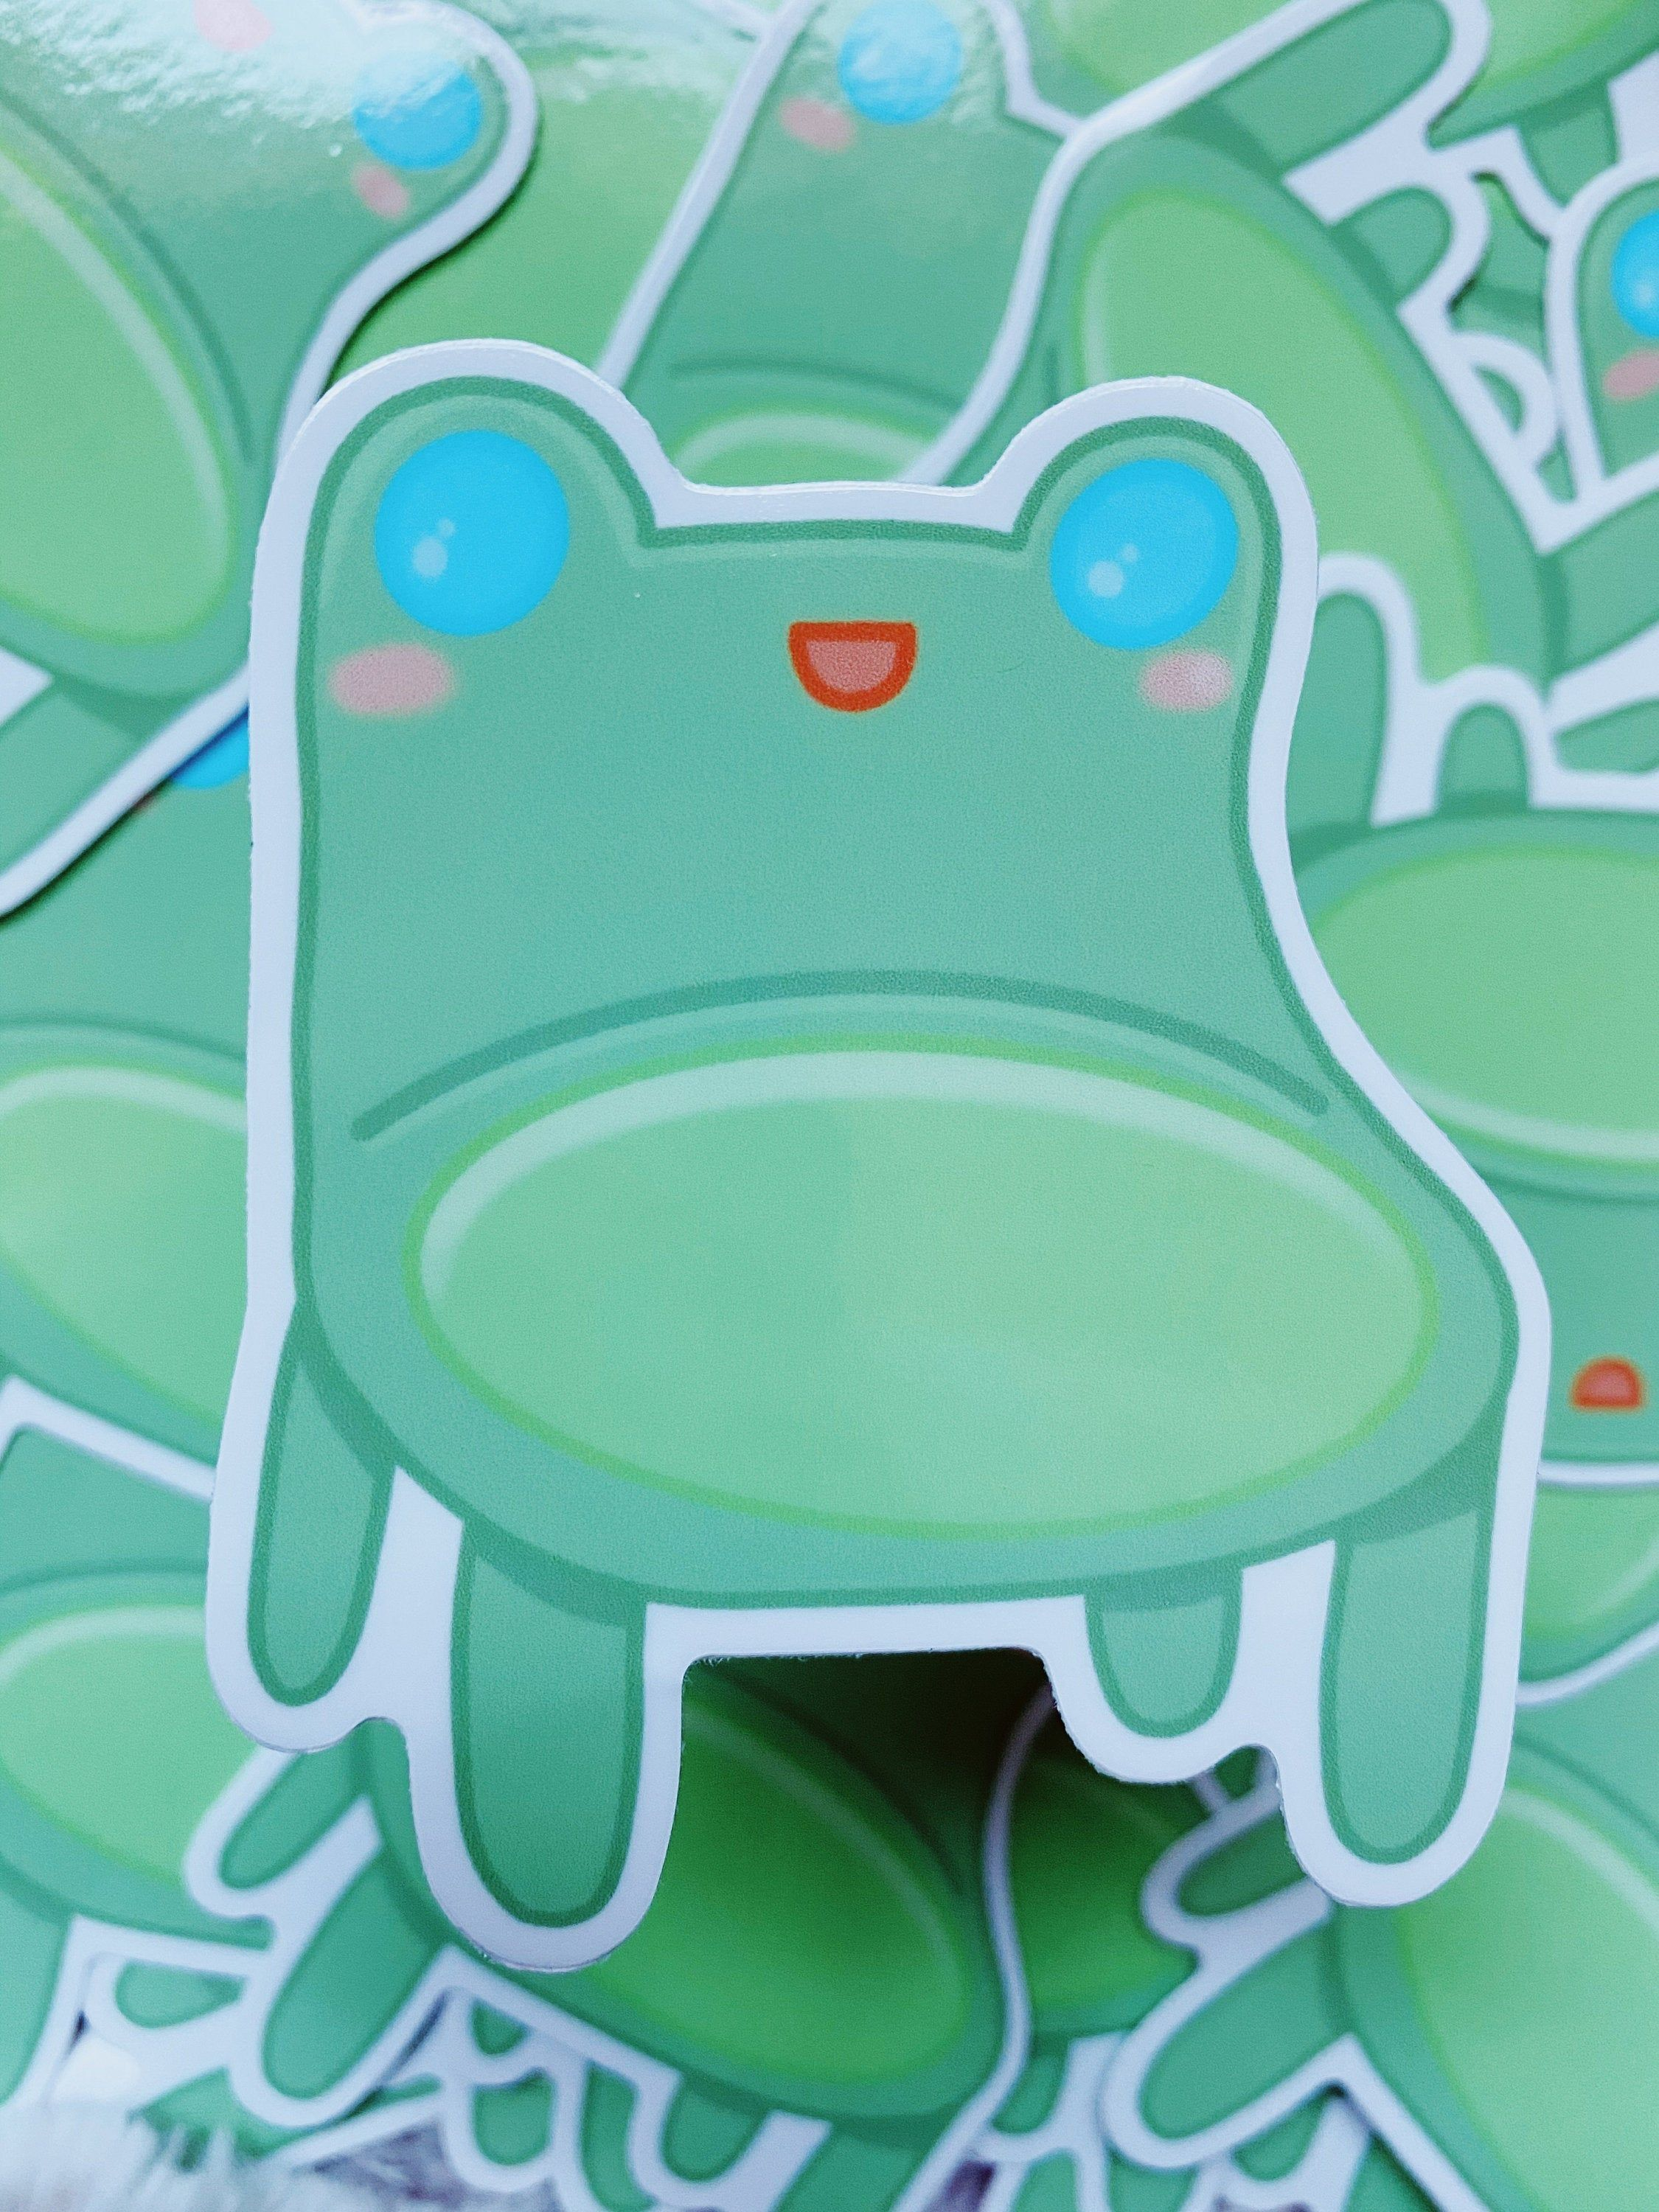 Animal Crossing Froggy Chair Sticker New Horizons Video